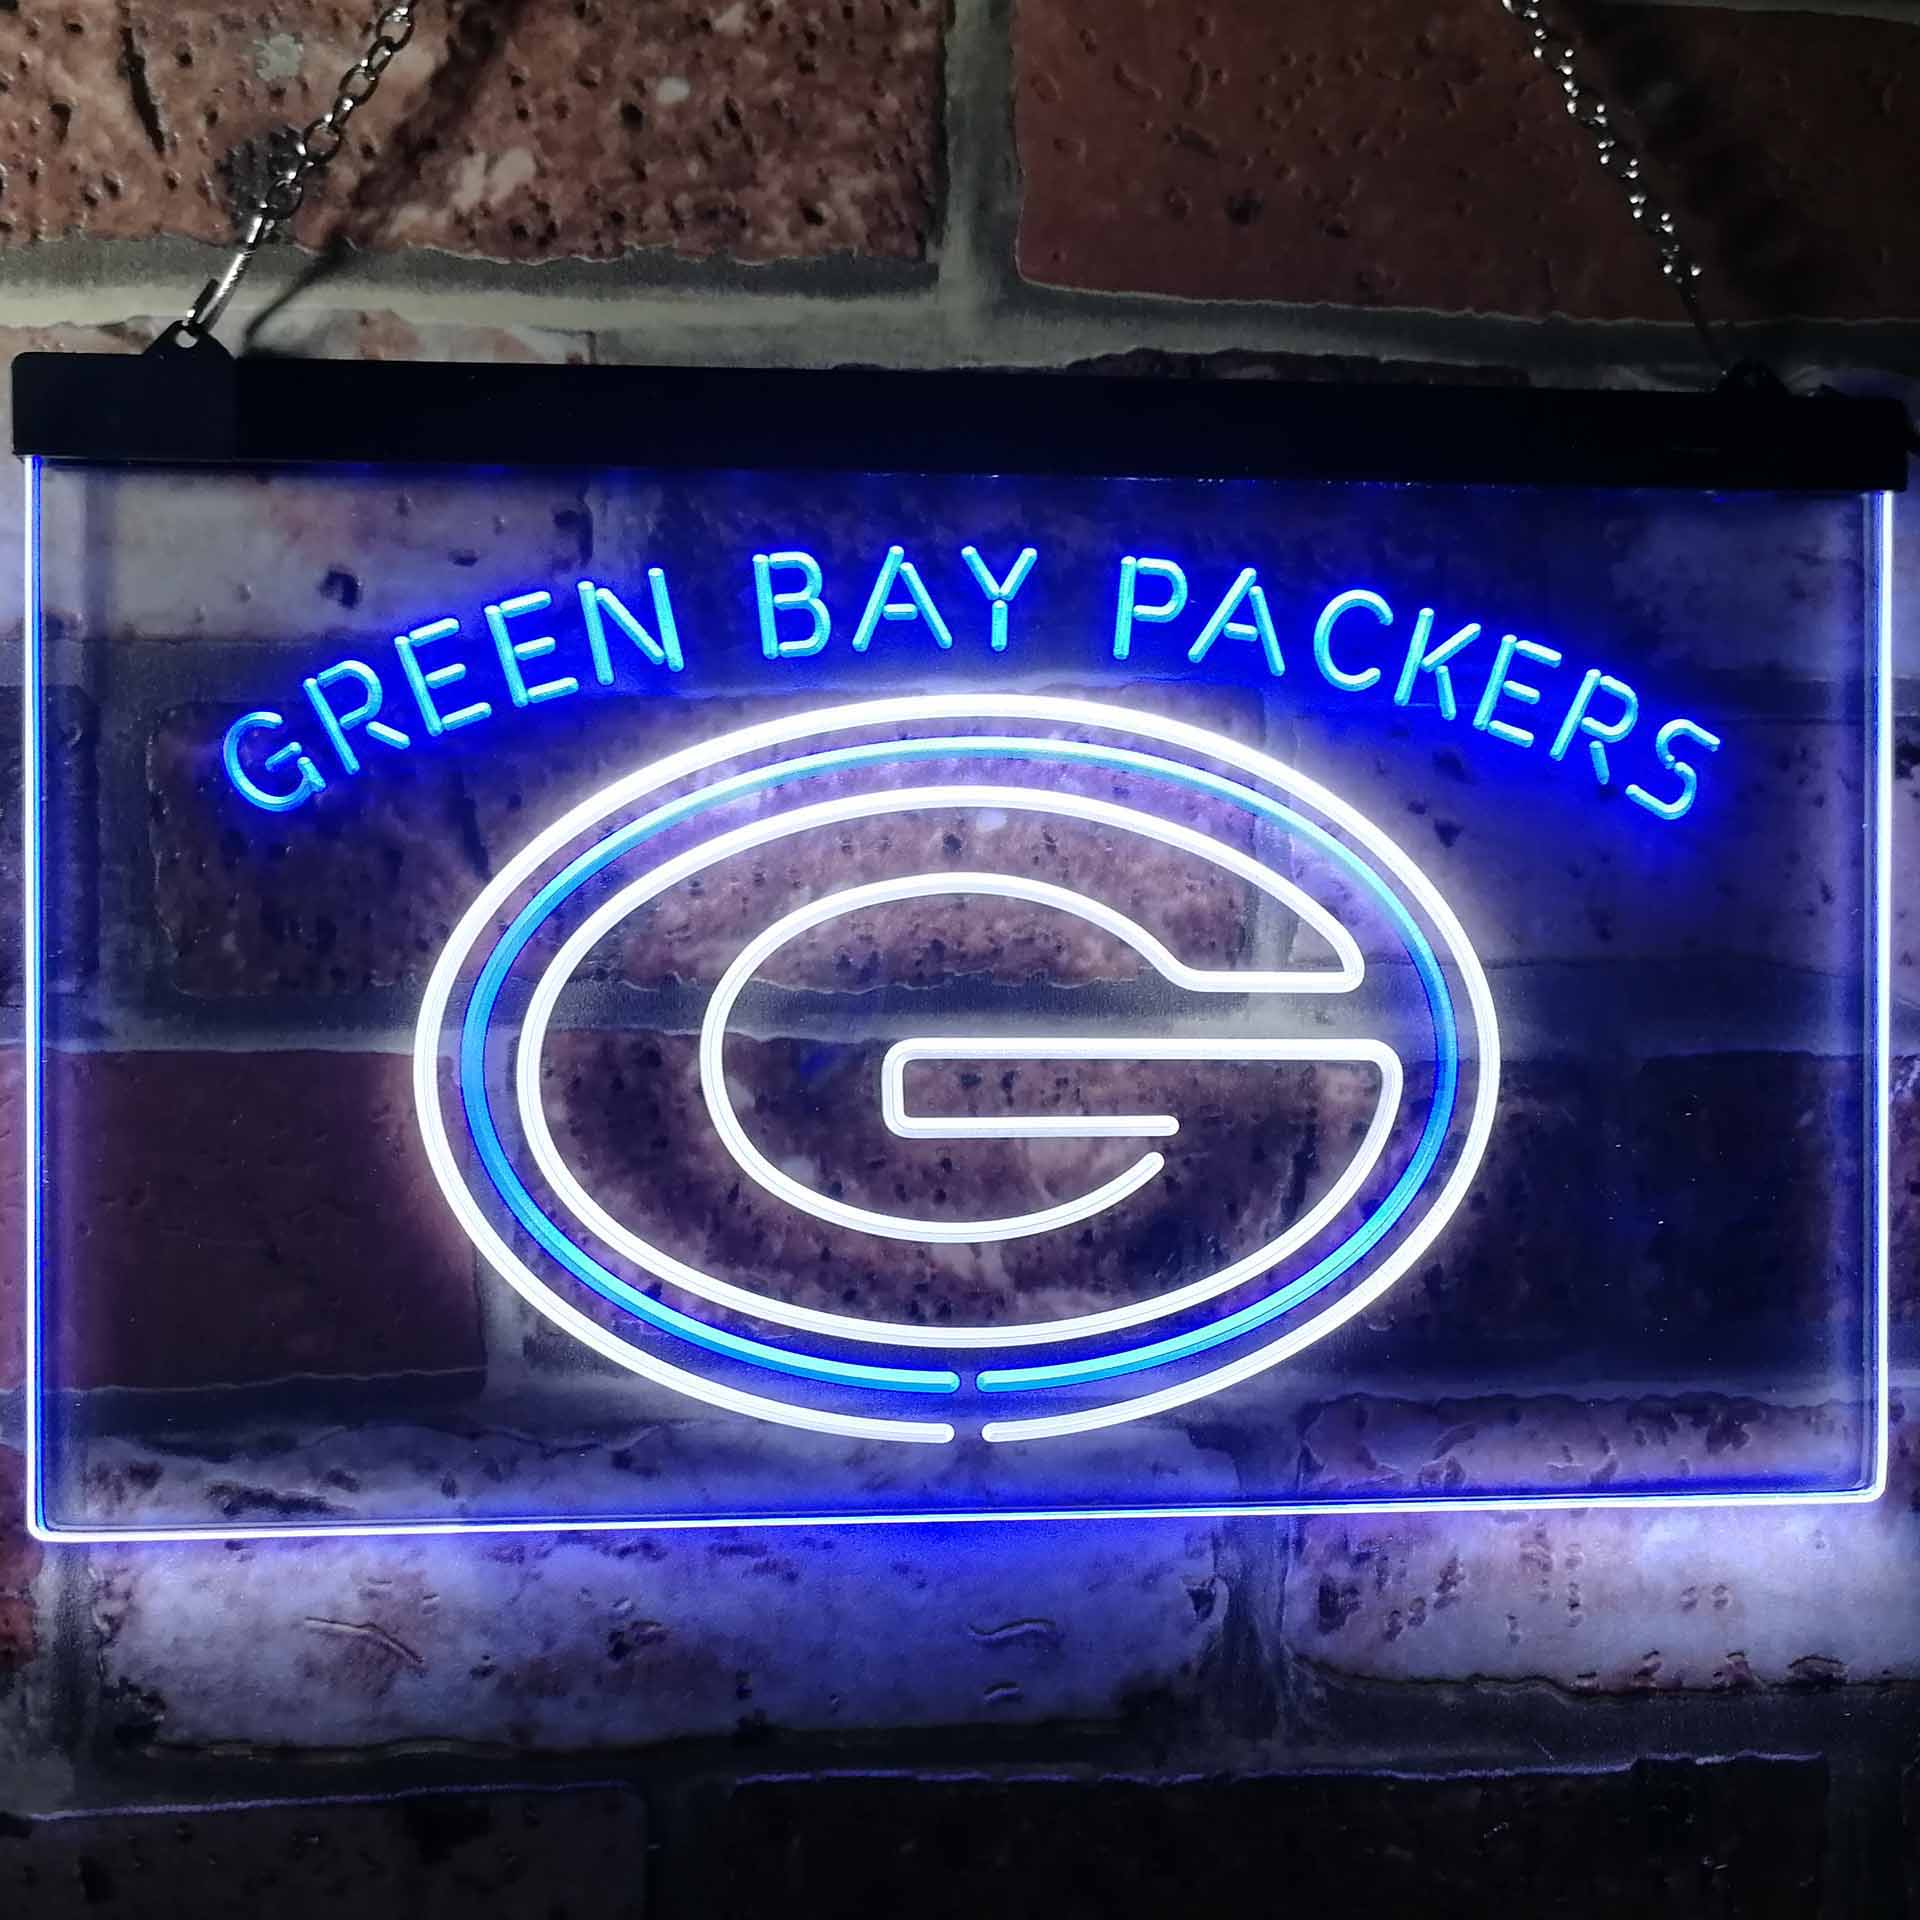 Green Bay Packers Football Bar Decor Dual Color LED Neon Sign ProLedSign